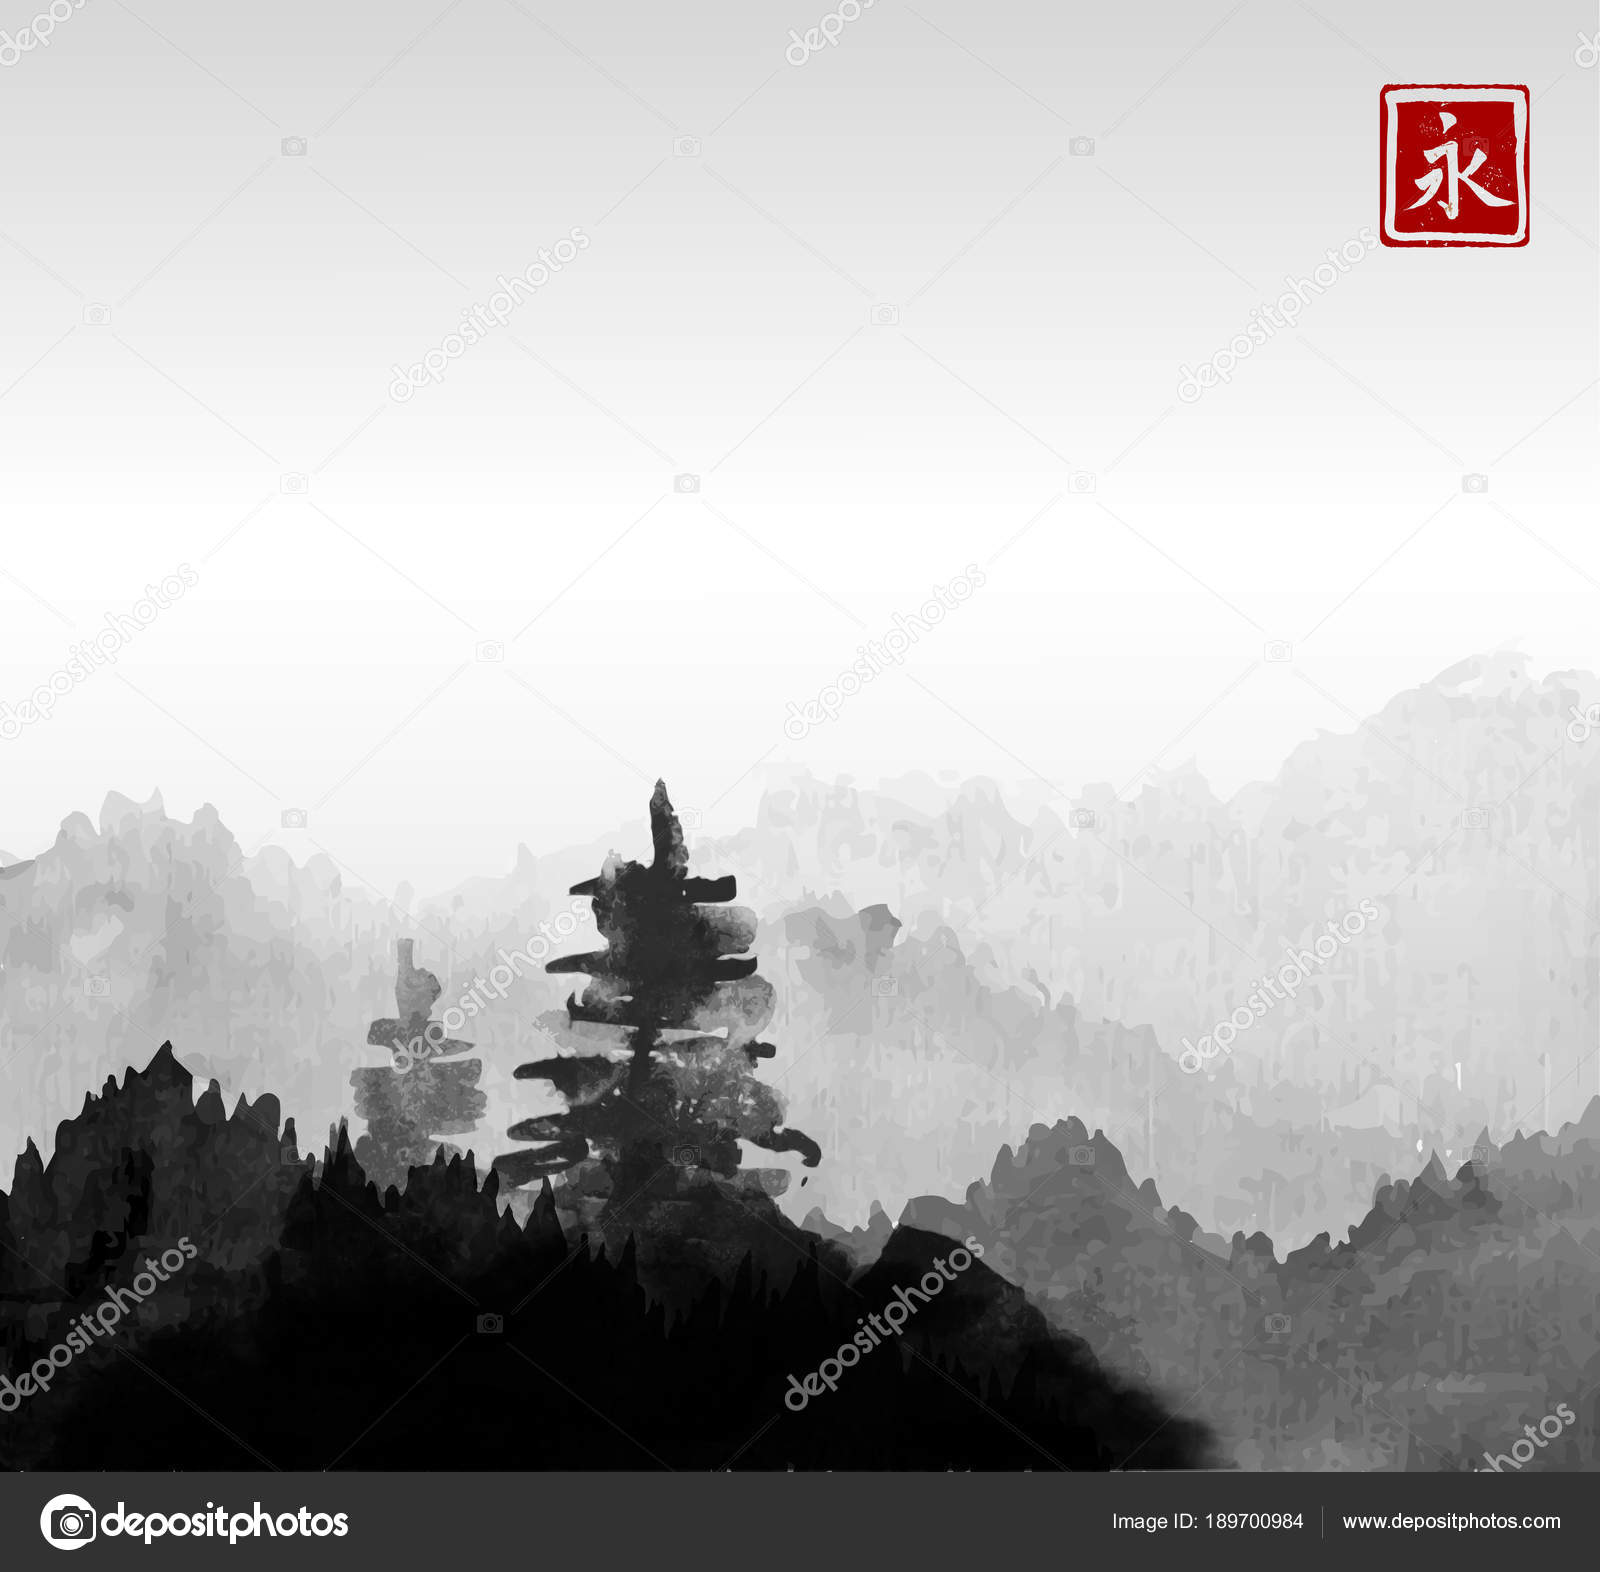 Stylized Black Ink Wash Painting Pine Trees Green Hill Mist Vector Image By C Elinacious Vector Stock 189700984